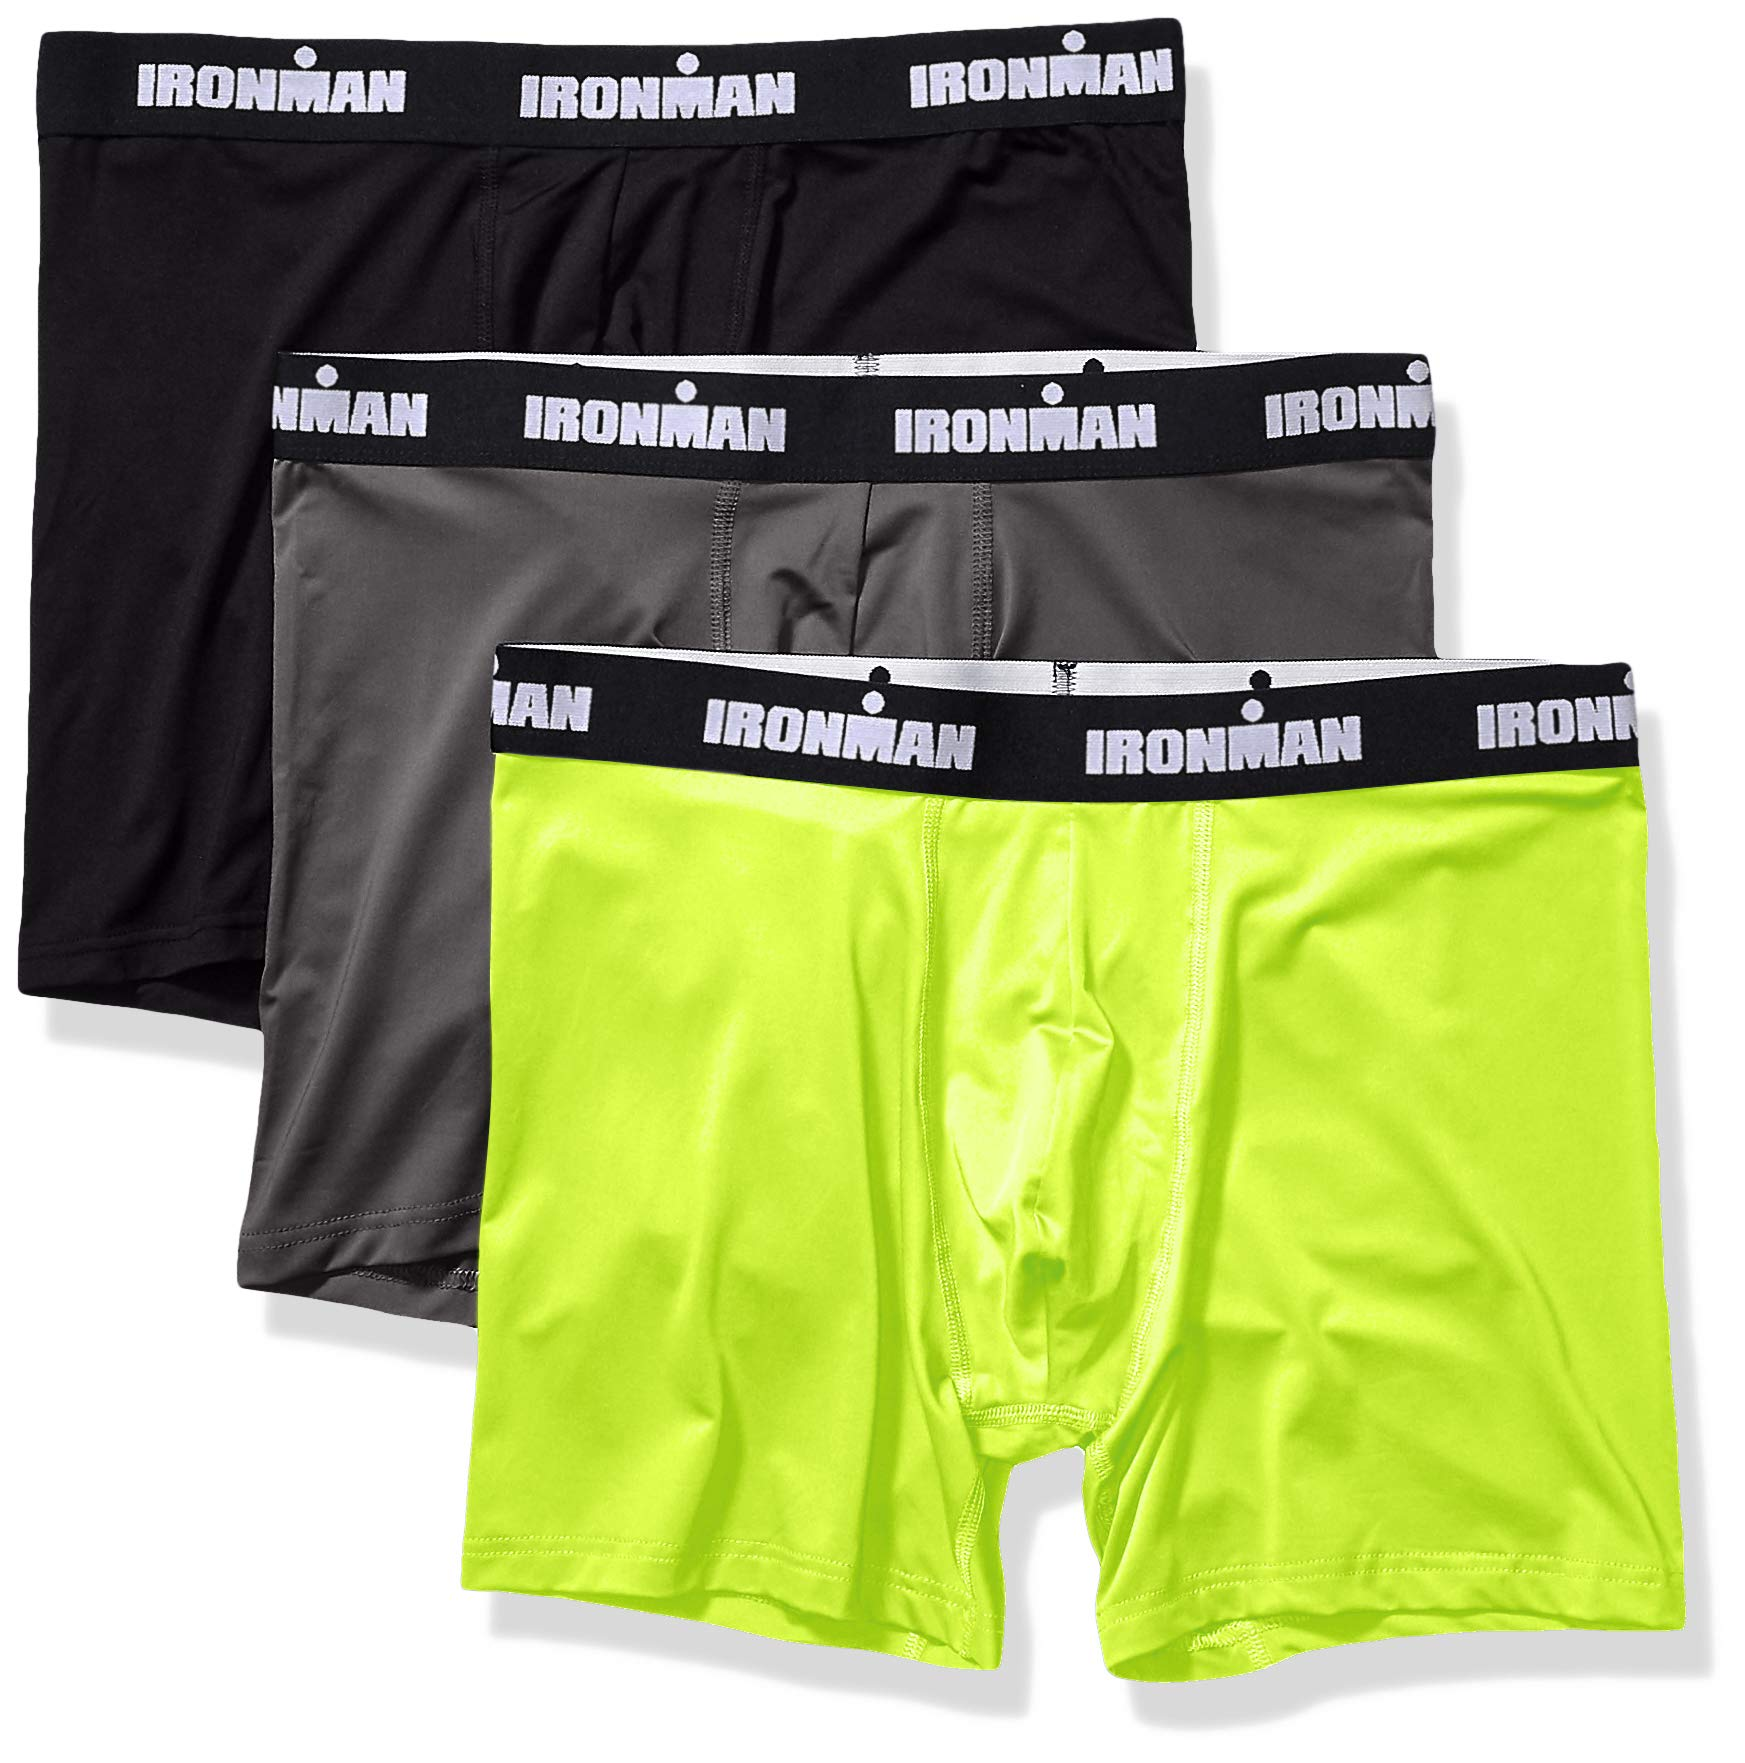 IRONMAN Men's Multipack Performance Boxer Brief